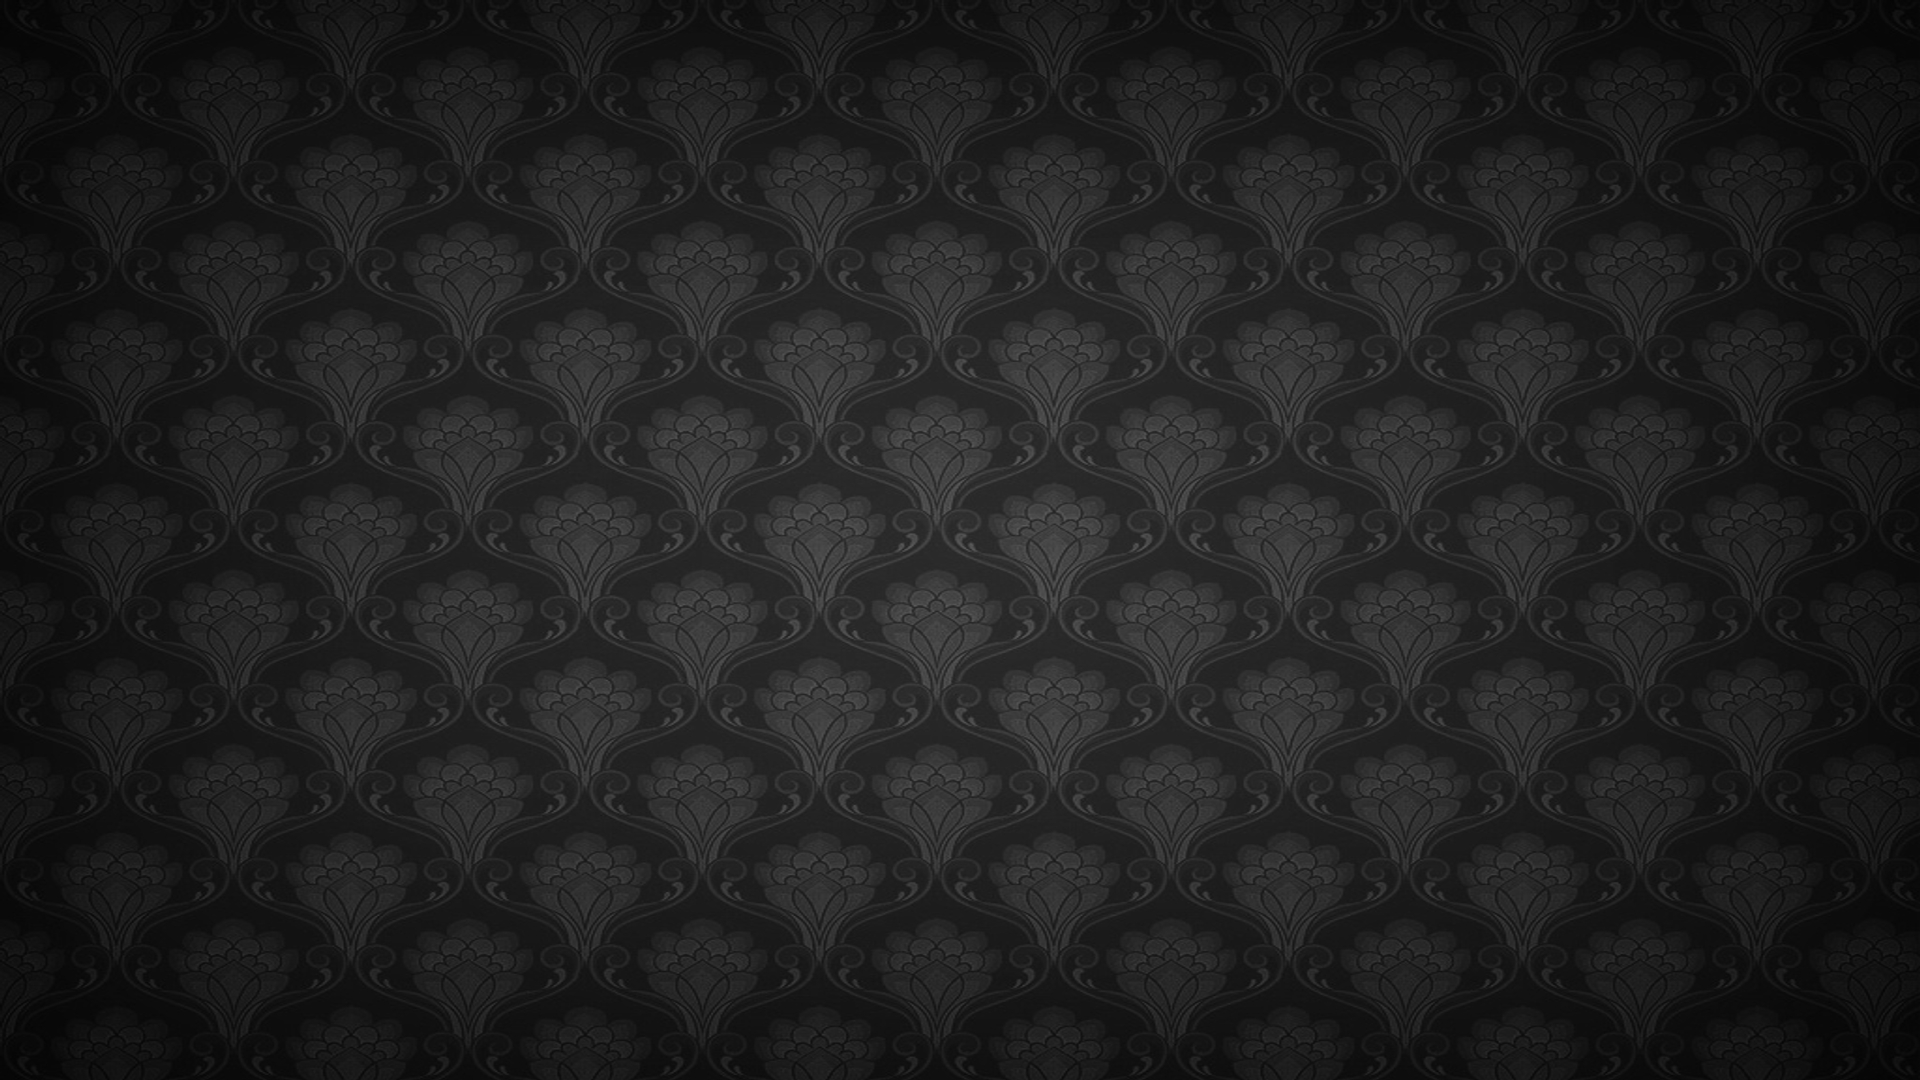 Black Floral Wallpaper 1920x1080